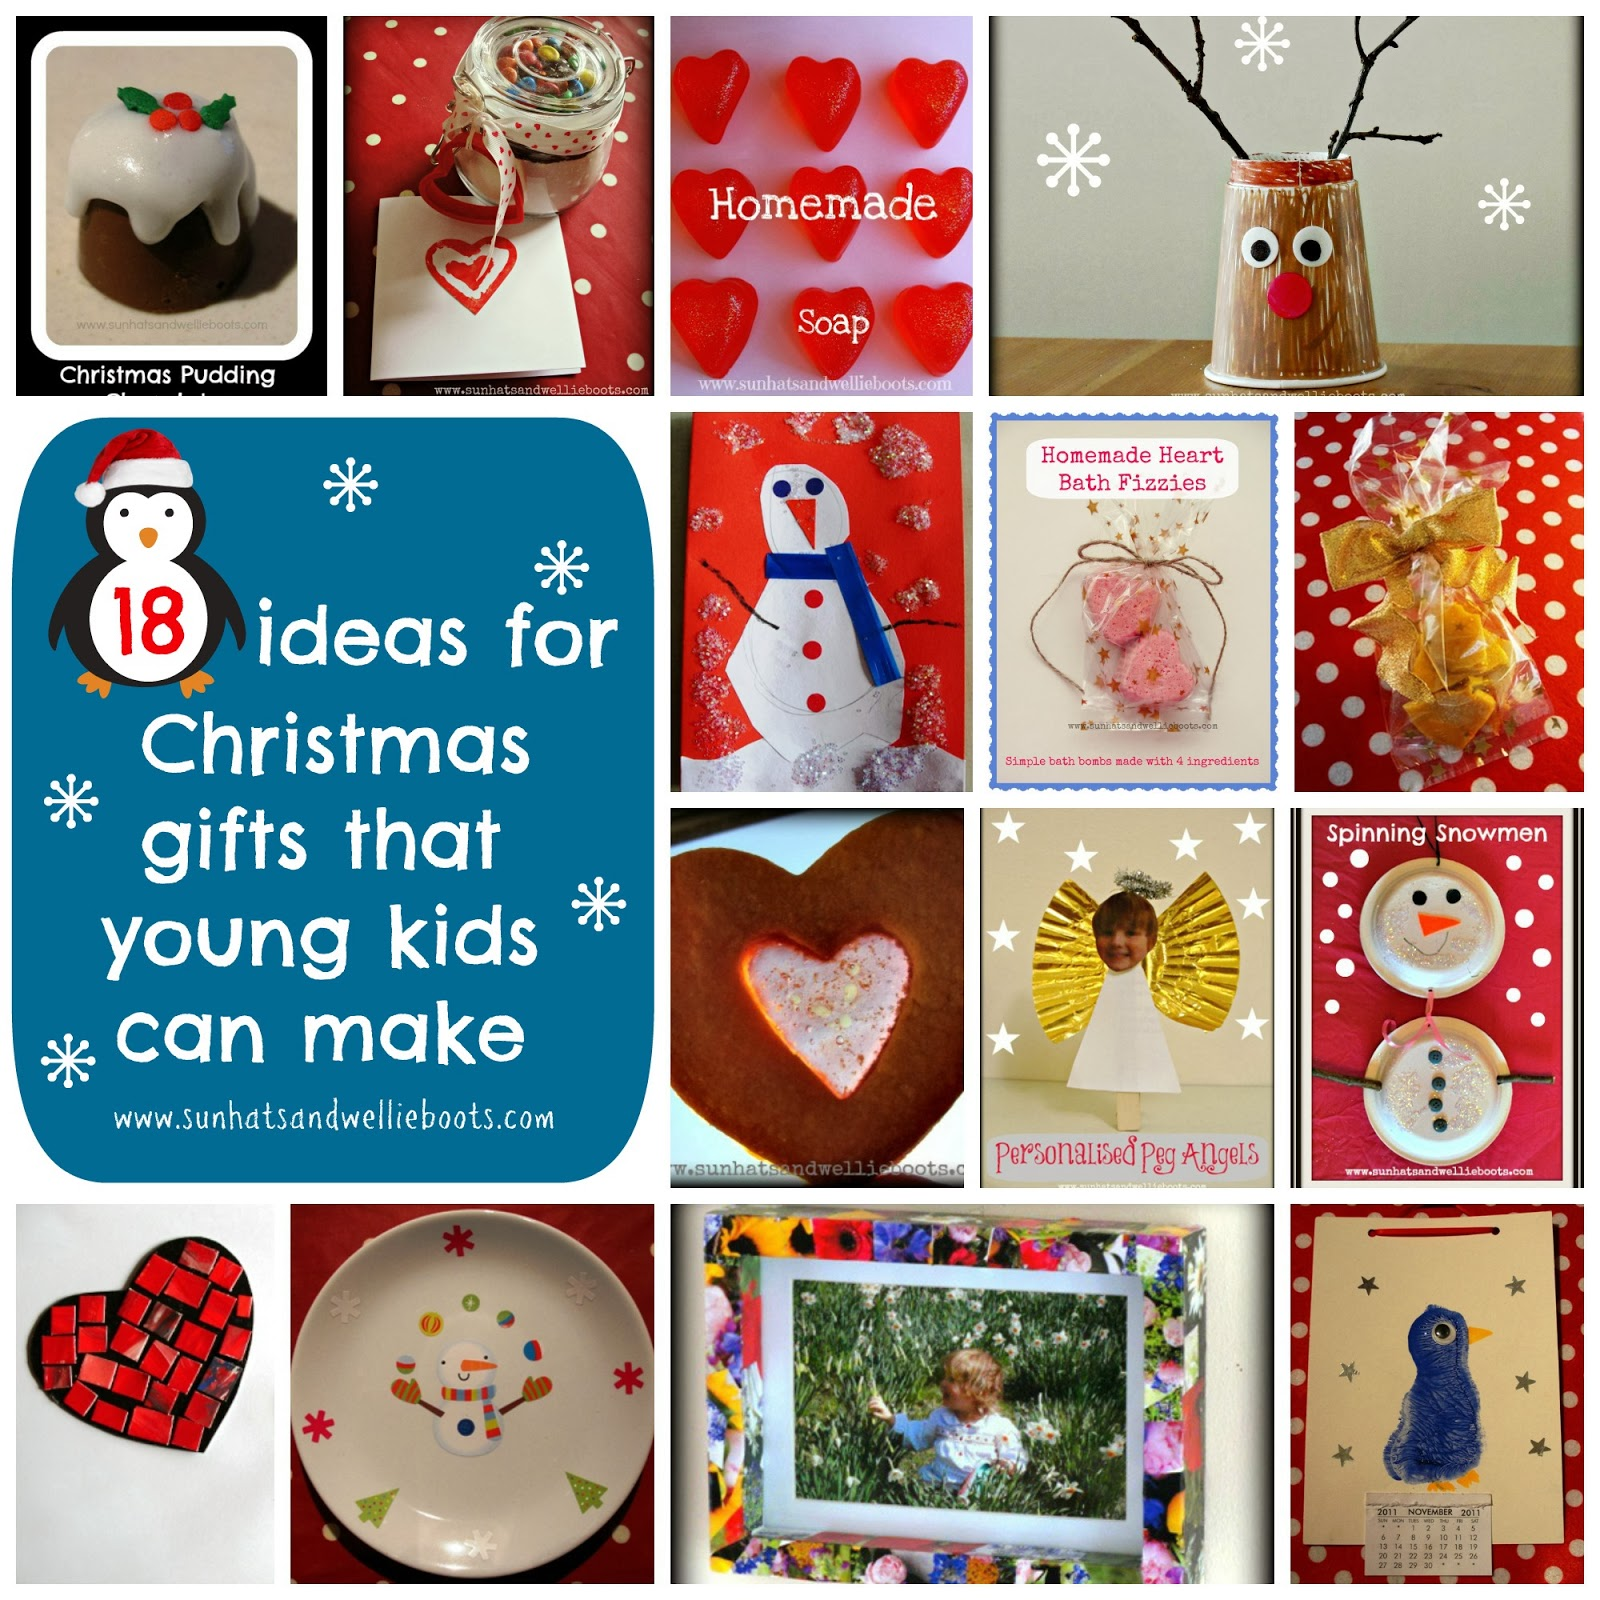 Sun Hats & Wellie Boots 18 Homemade Christmas Gifts That Young